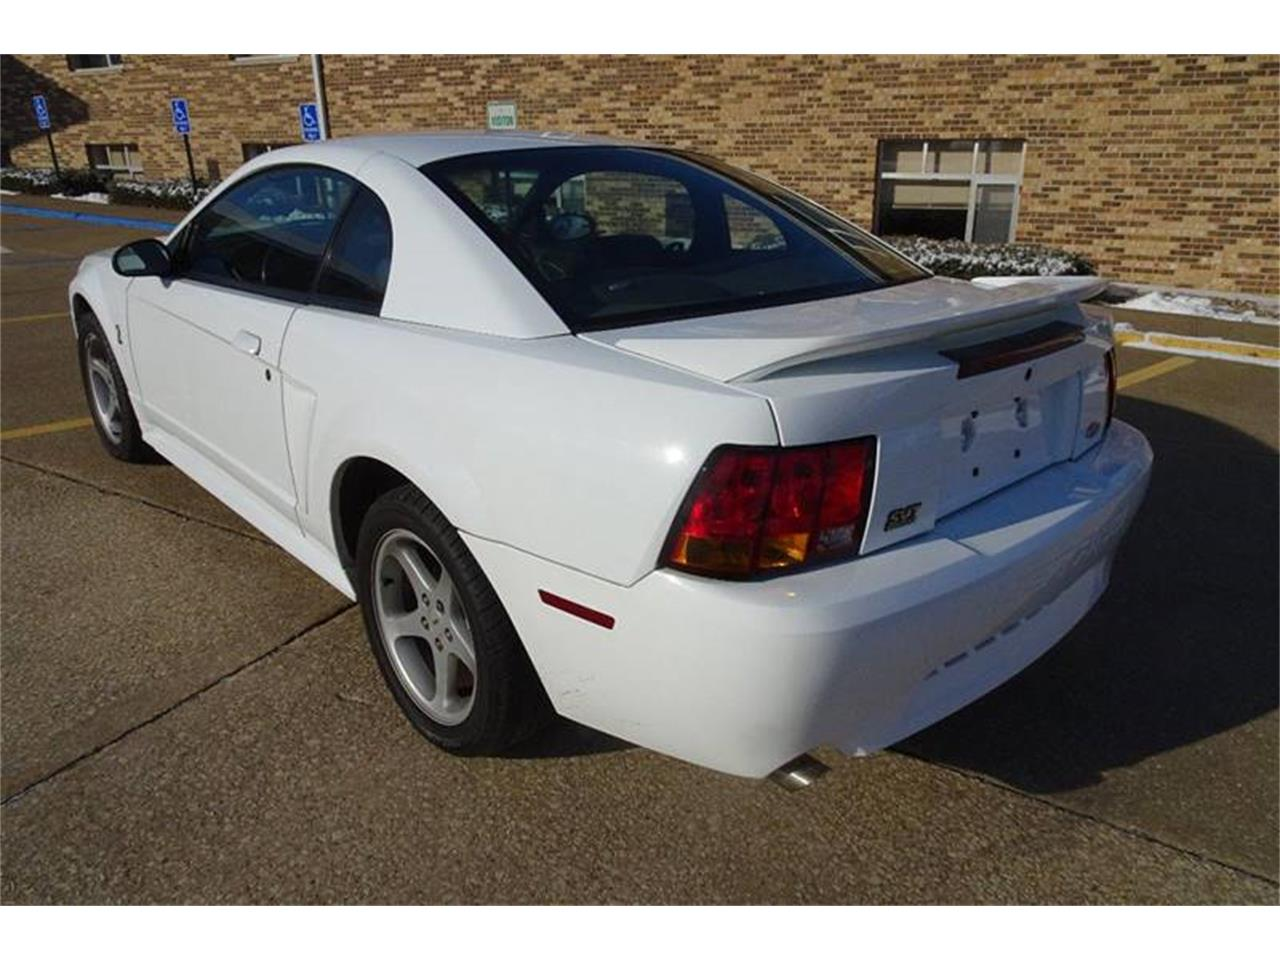 Large Picture of 1999 Mustang SVT Cobra located in Iowa - $11,995.00 - MZKE